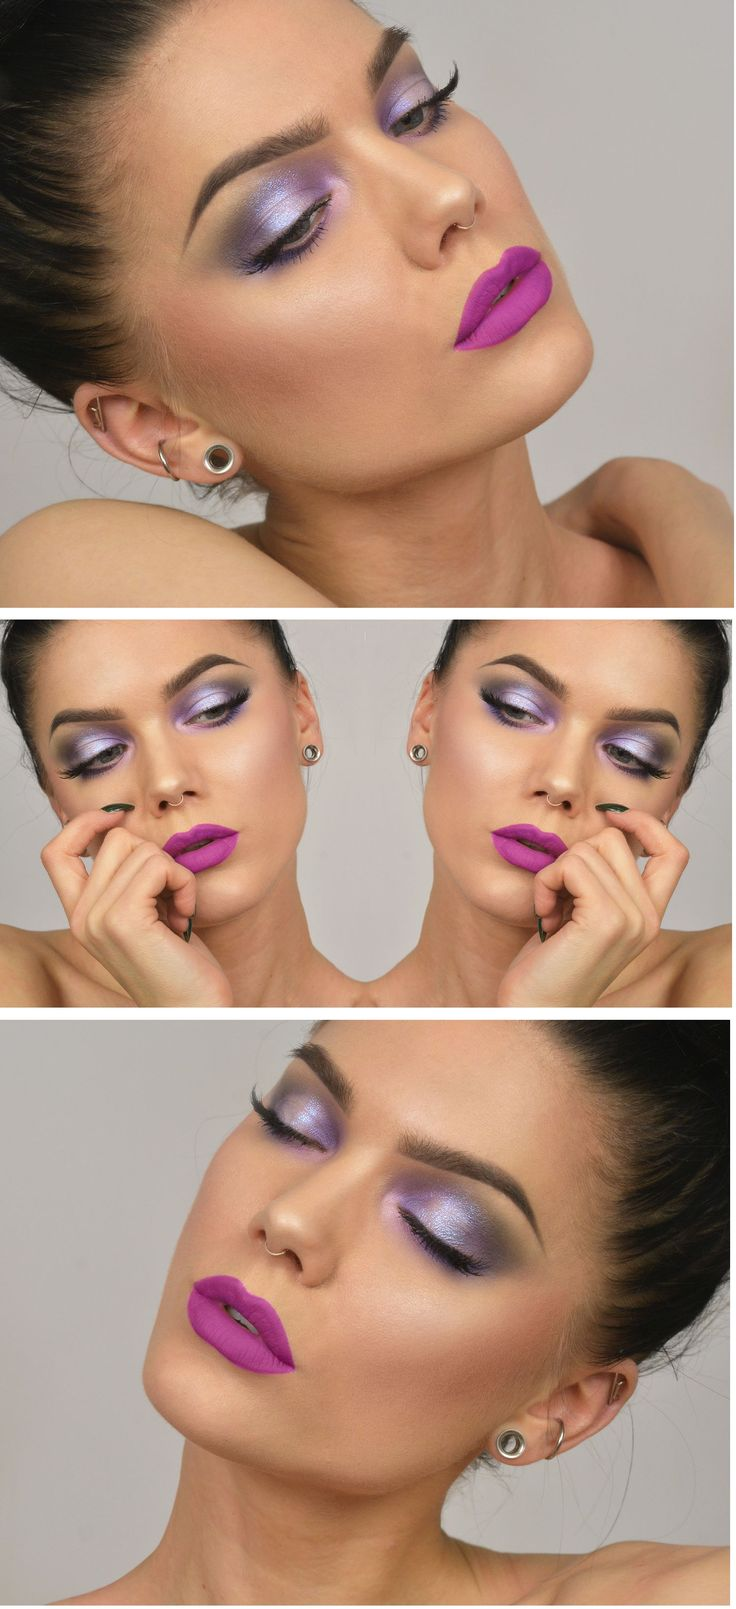 pastel dreams ... pictorial check here: http://lindahallberg.se/2016/04/07/pictorial-pastel-dreams/